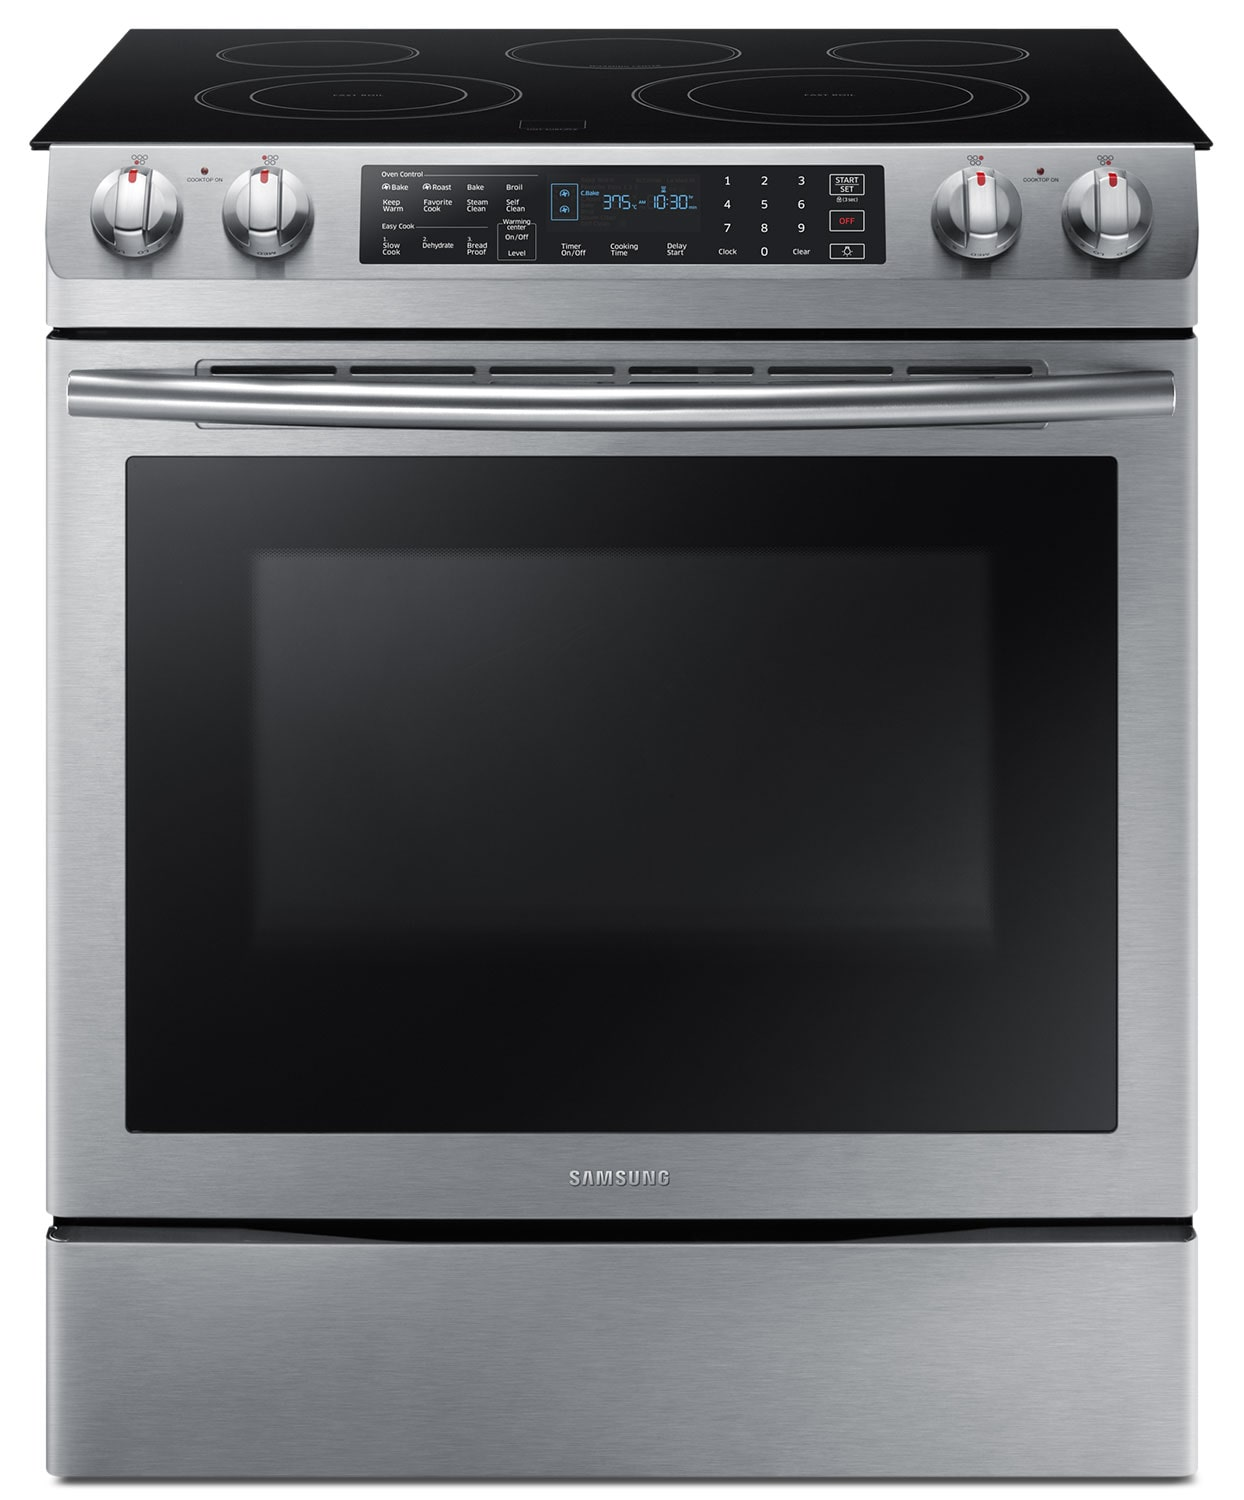 Cooking Products - Samsung 5.8 Cu. Ft. Electric Slide-In Dual Convection Range – NE58M9430SS/AC